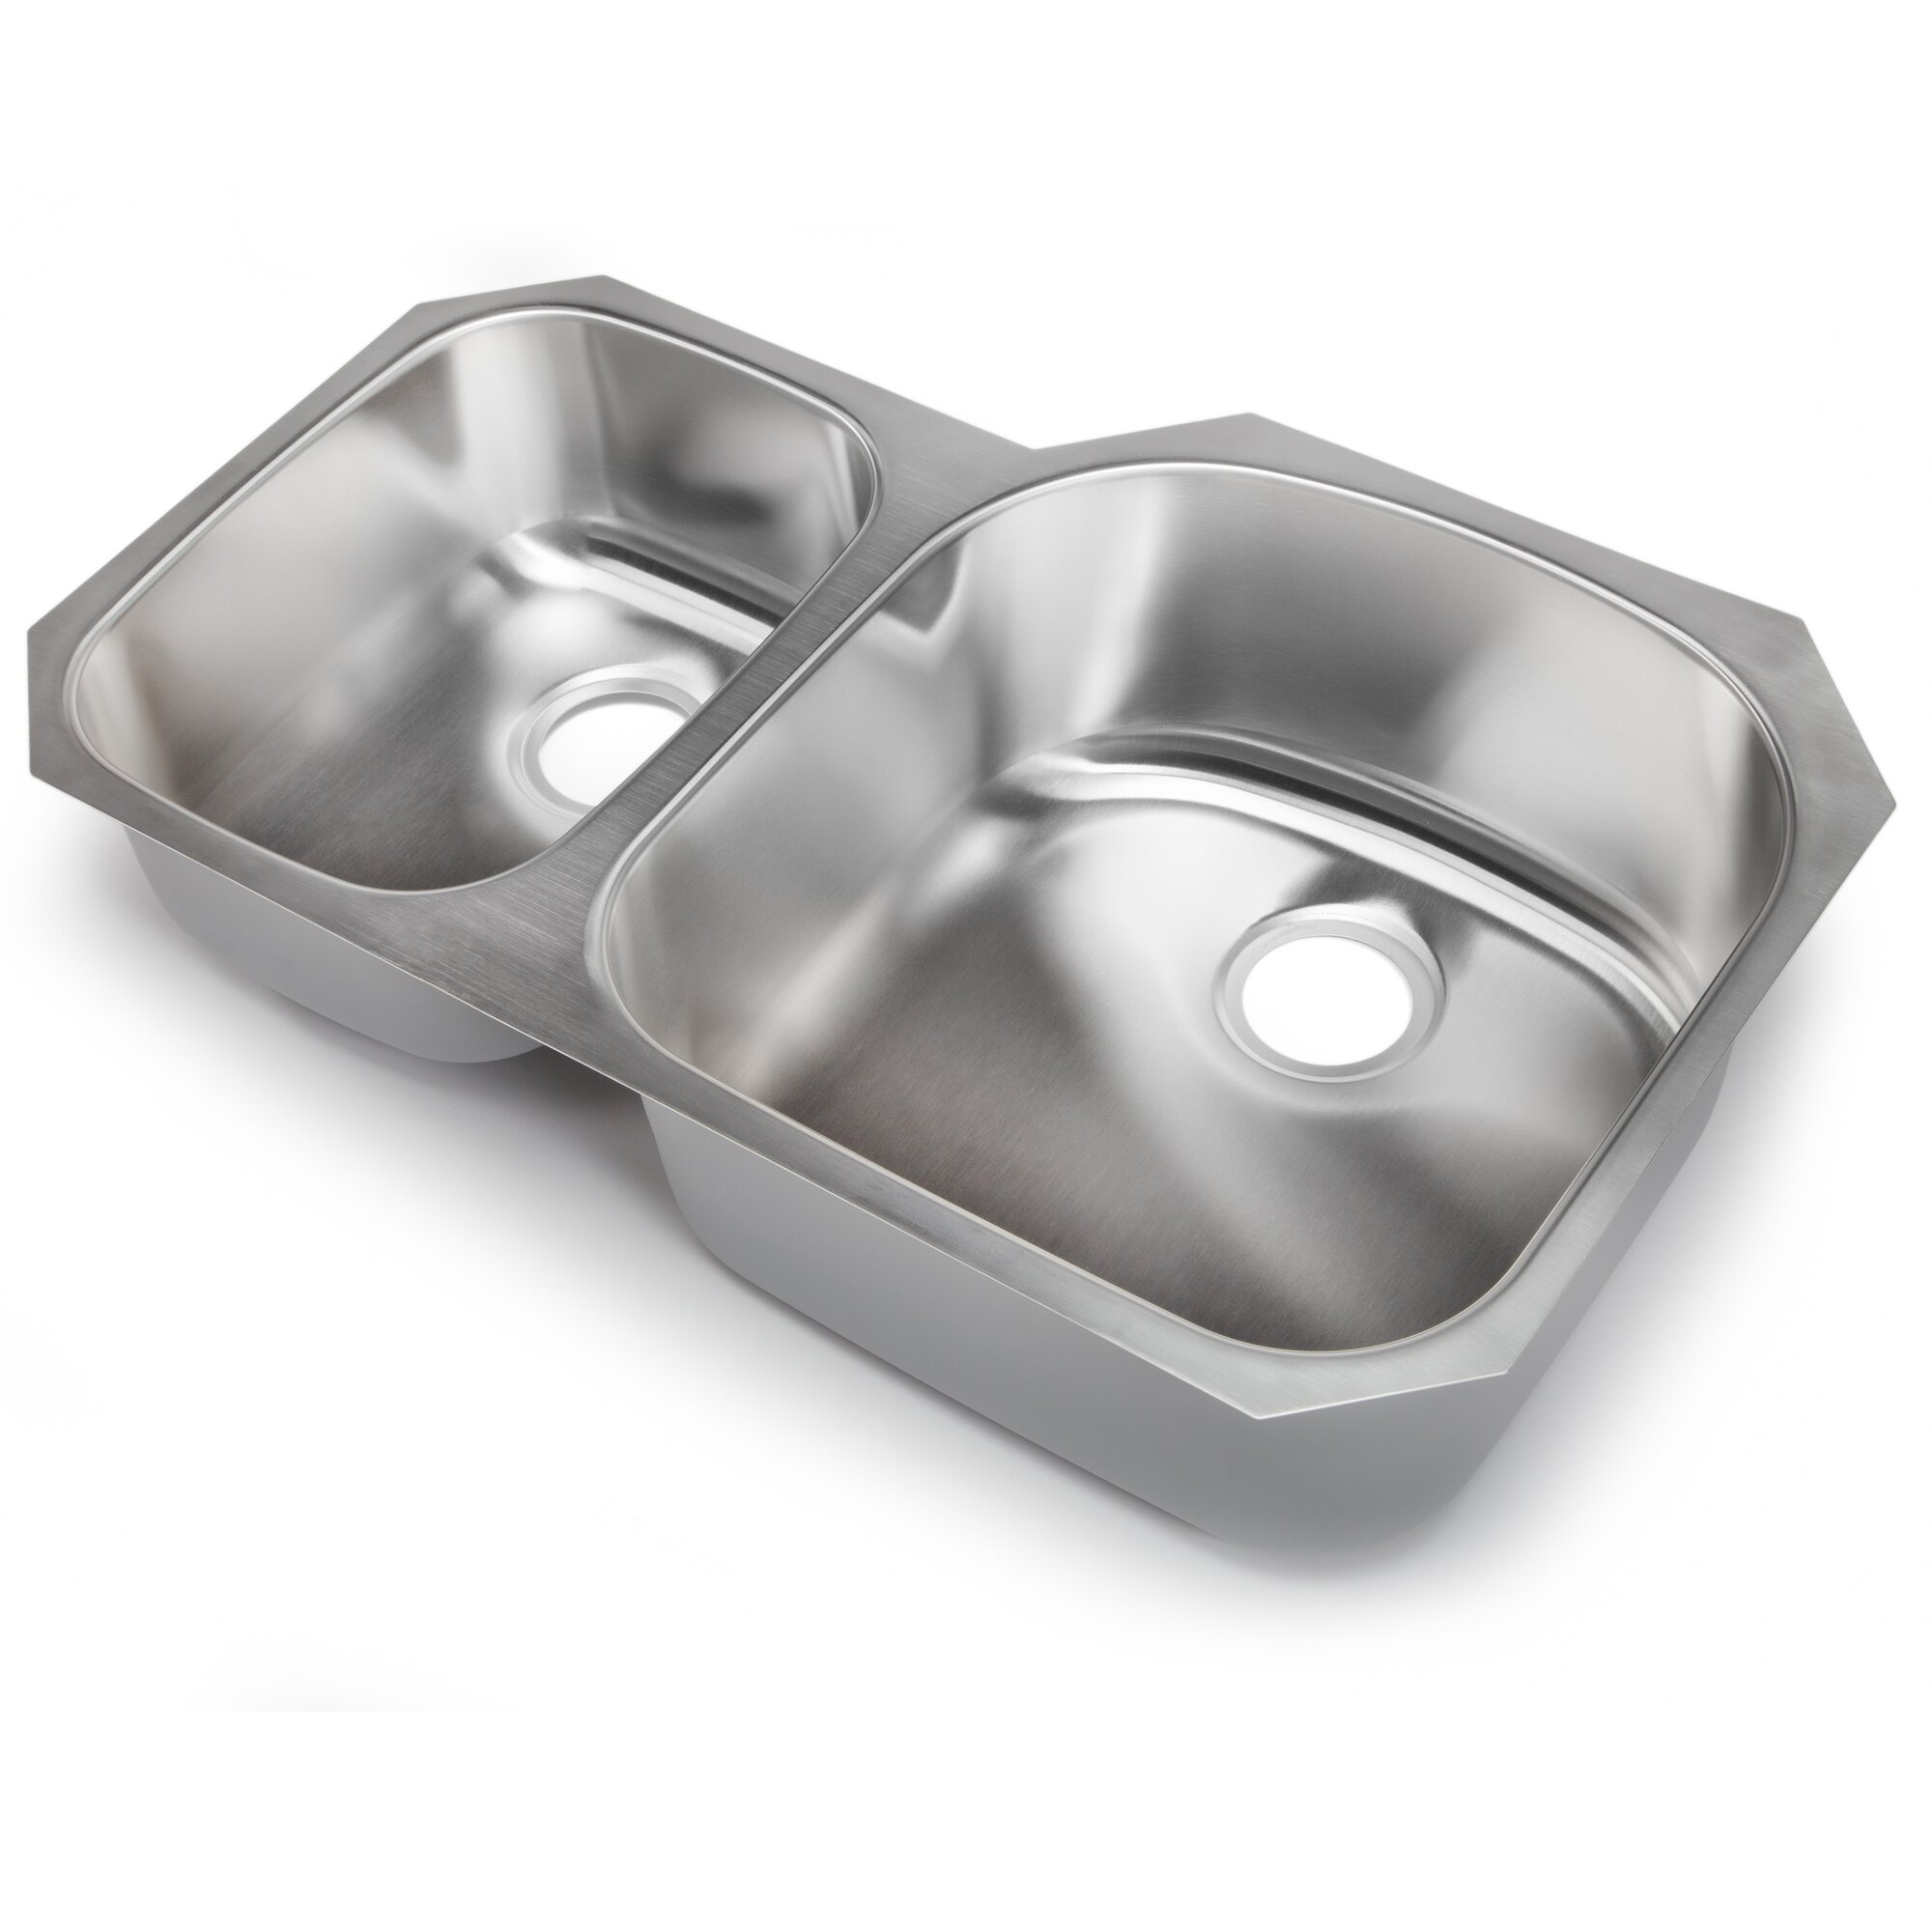 kitchen sink 38 x 22 hahn classic chef 32 38 quot x 20 5 quot bowl undermount 8425